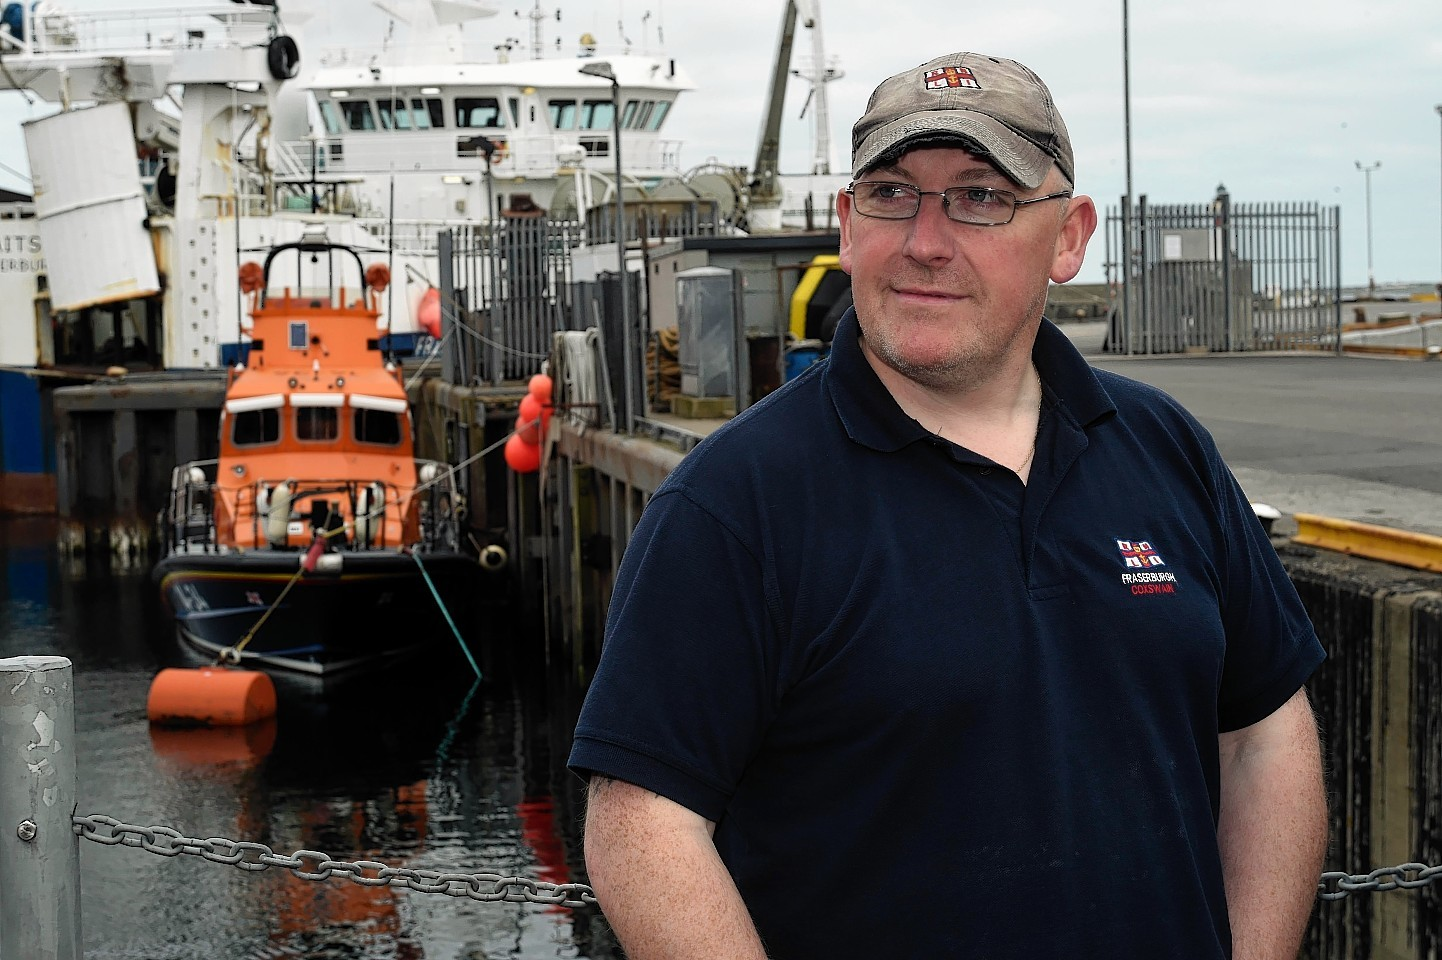 Victor Sutherland, the coxswain of the Fraserburgh Lifeboat.